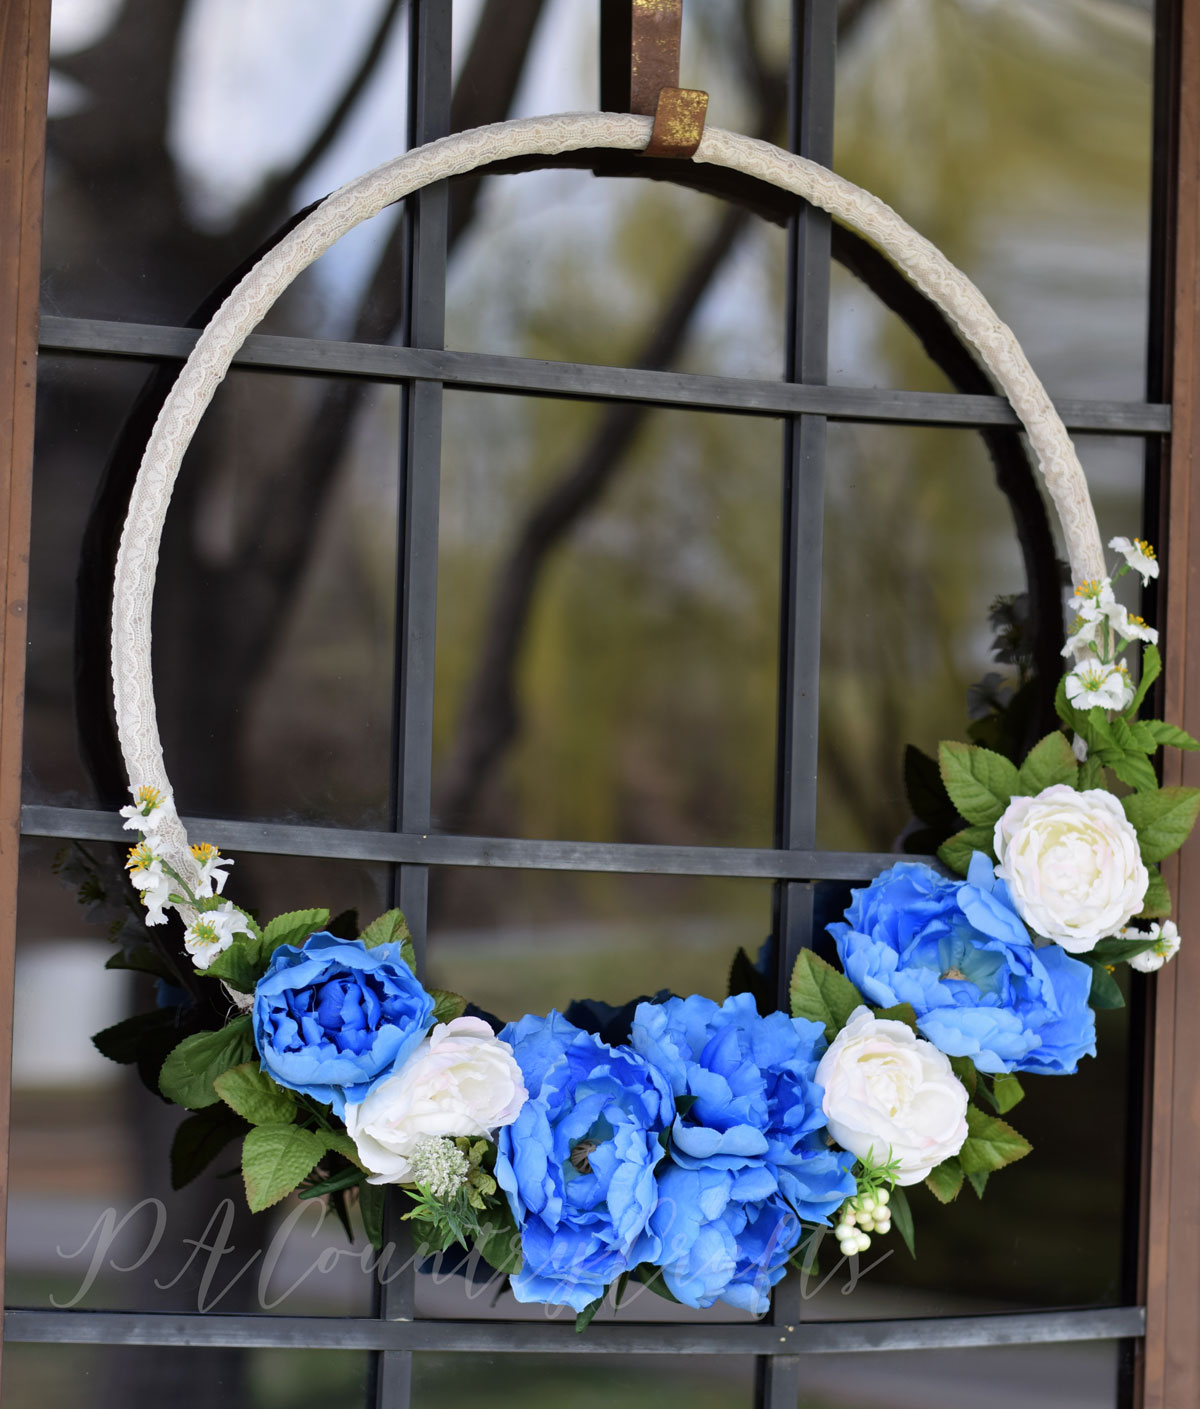 Wreath made from a $1 hula hoop!